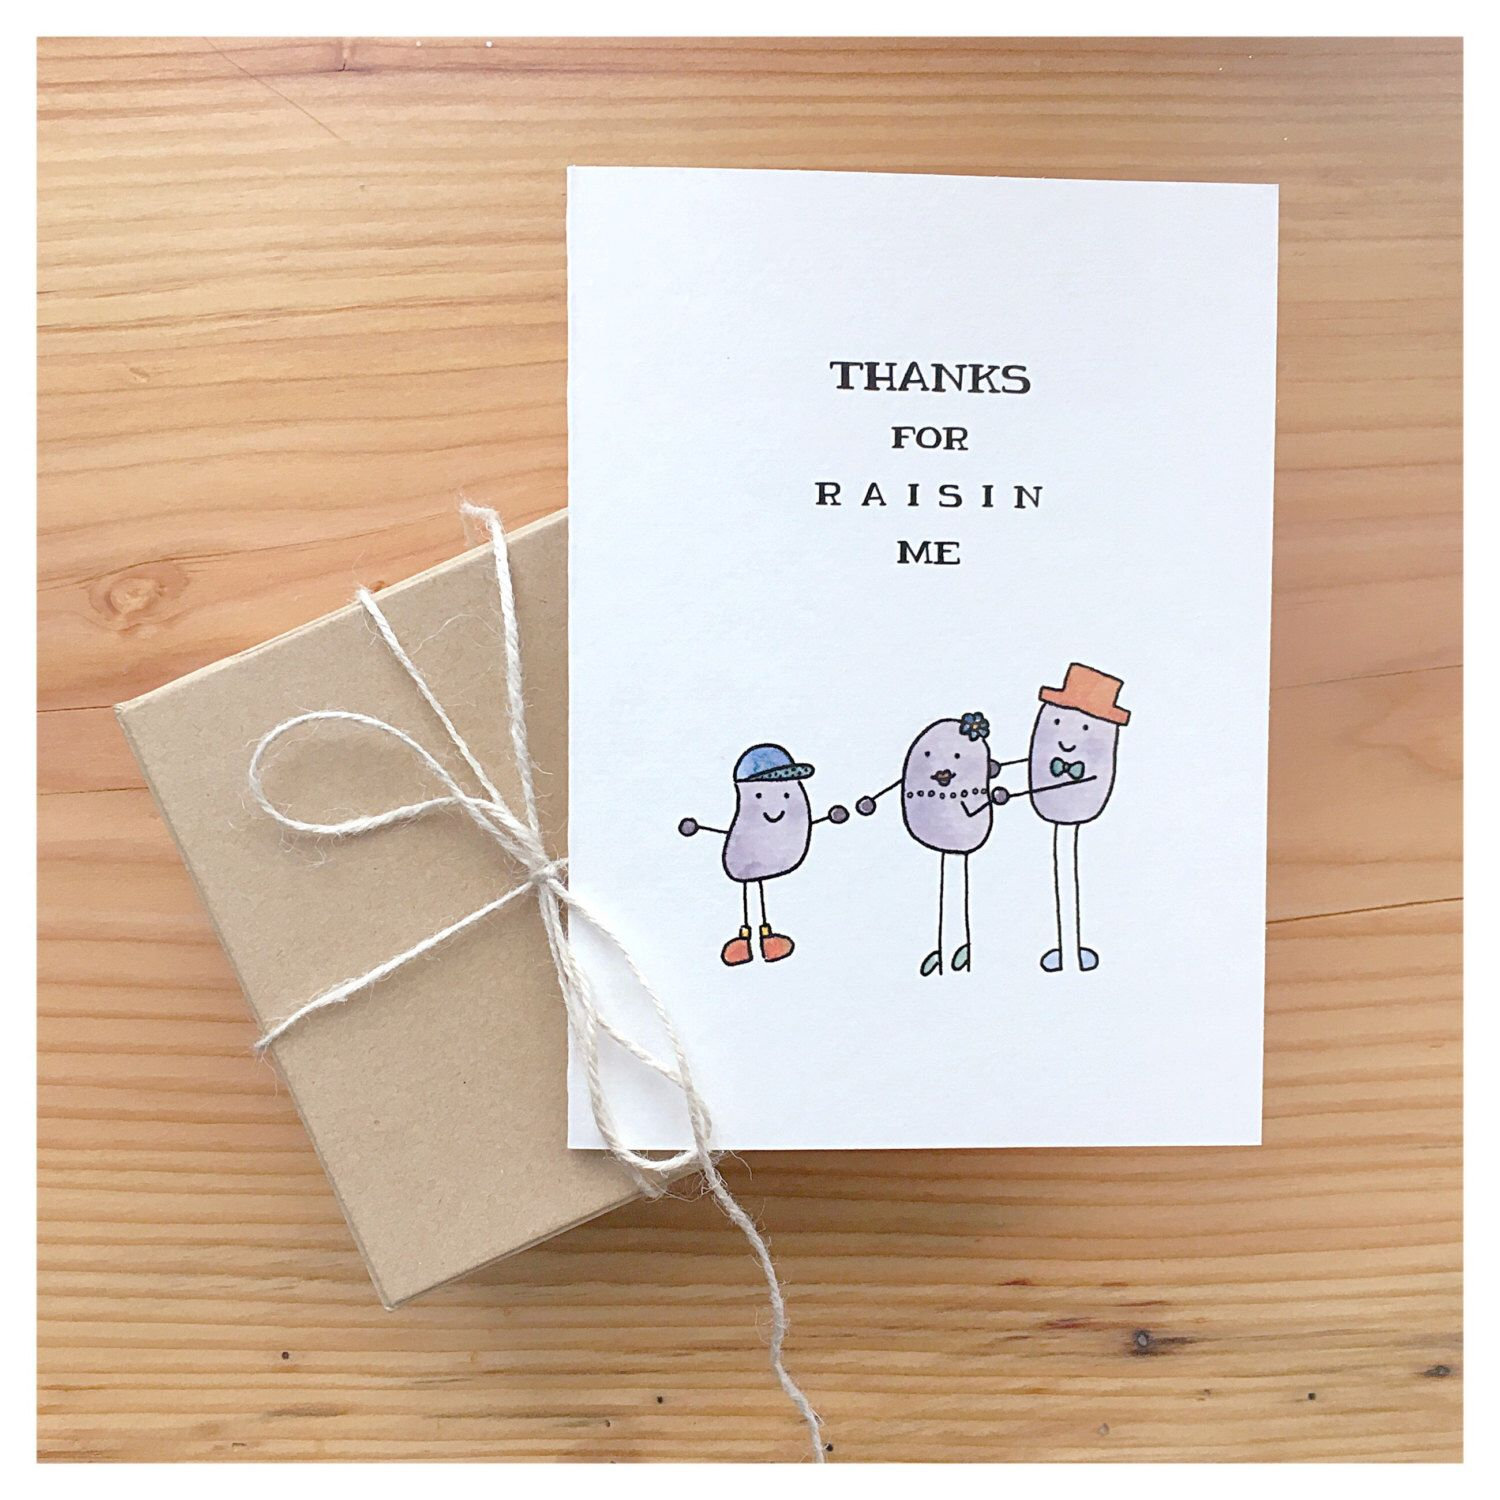 Thanks for Raisin Me - Handmade Watercolour Greeting Card, parent card, funny card for mom, funny card for father, funny greeting card, fun by kenziecardco on Etsy https://www.etsy.com/ca/listing/244990545/thanks-for-raisin-me-handmade